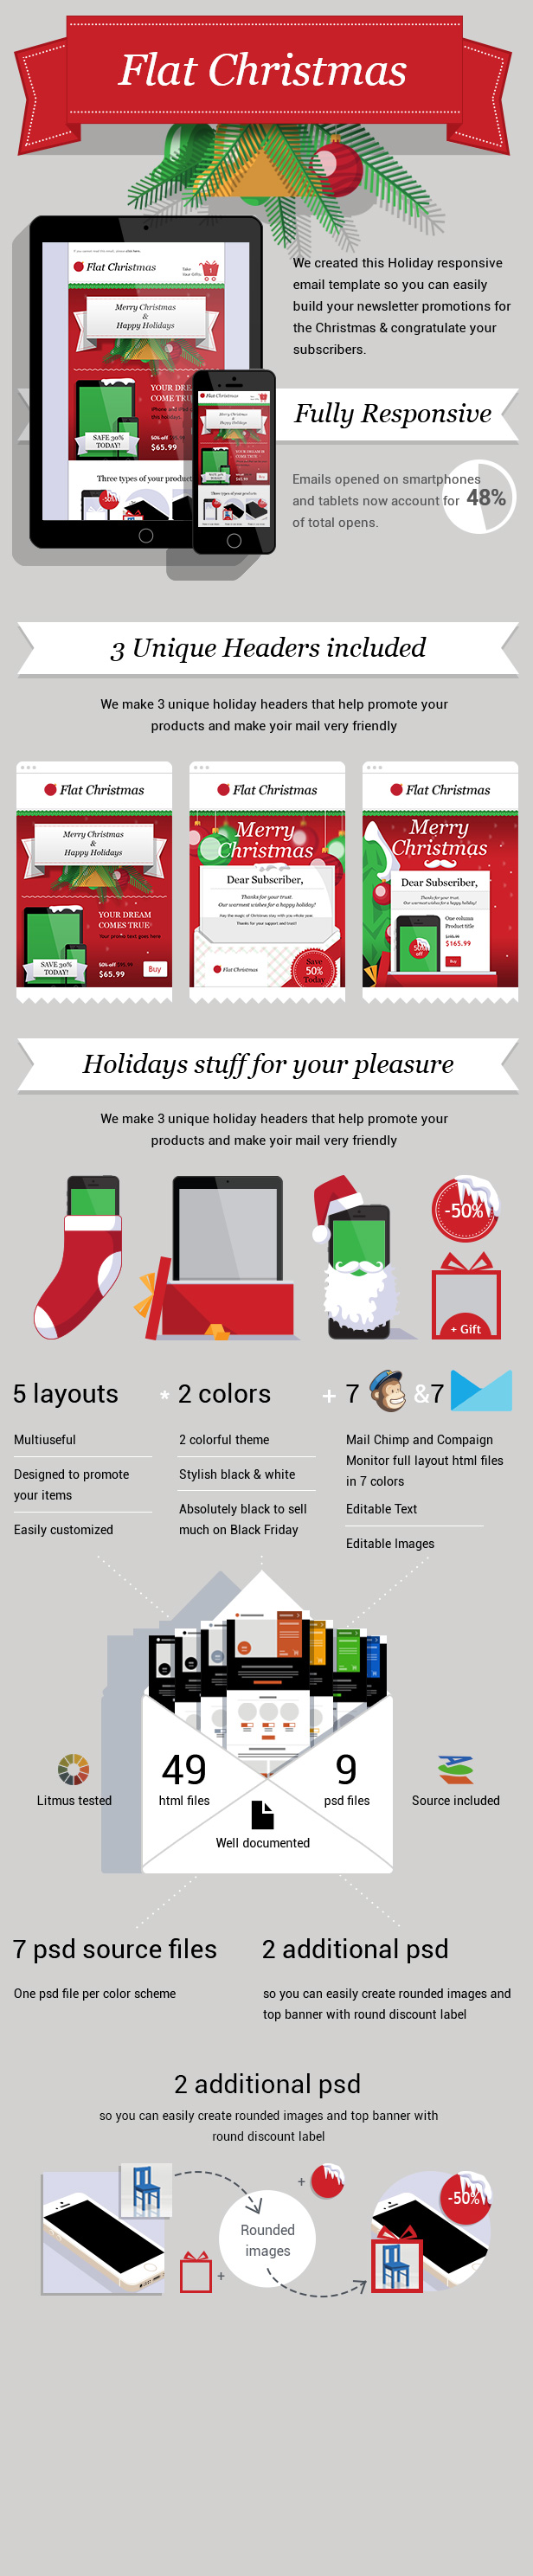 Responsive Christmas Email Template some promo information. http ...